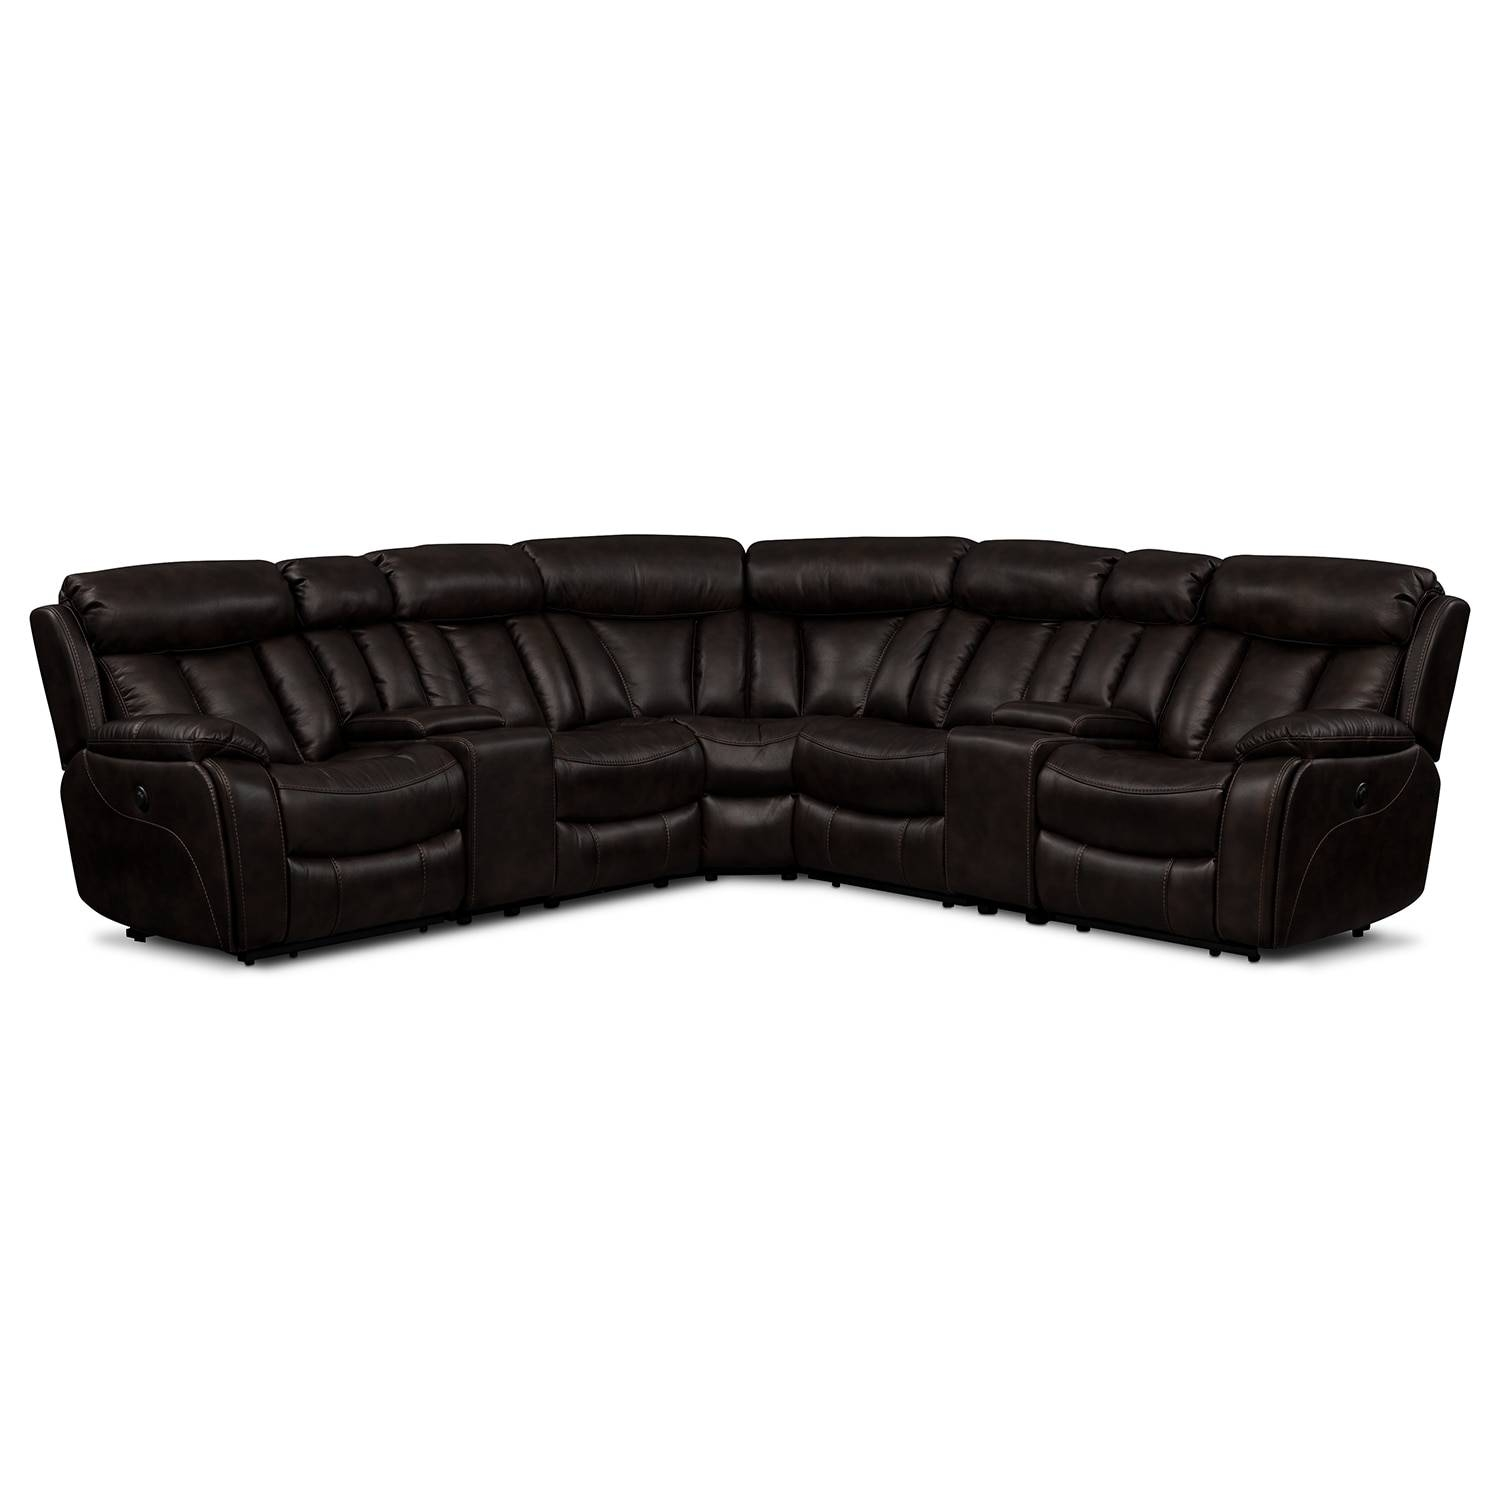 Sectional Sofas | American Signature | American Signature Furniture pertaining to Theatre Sectional Sofas (Image 26 of 30)